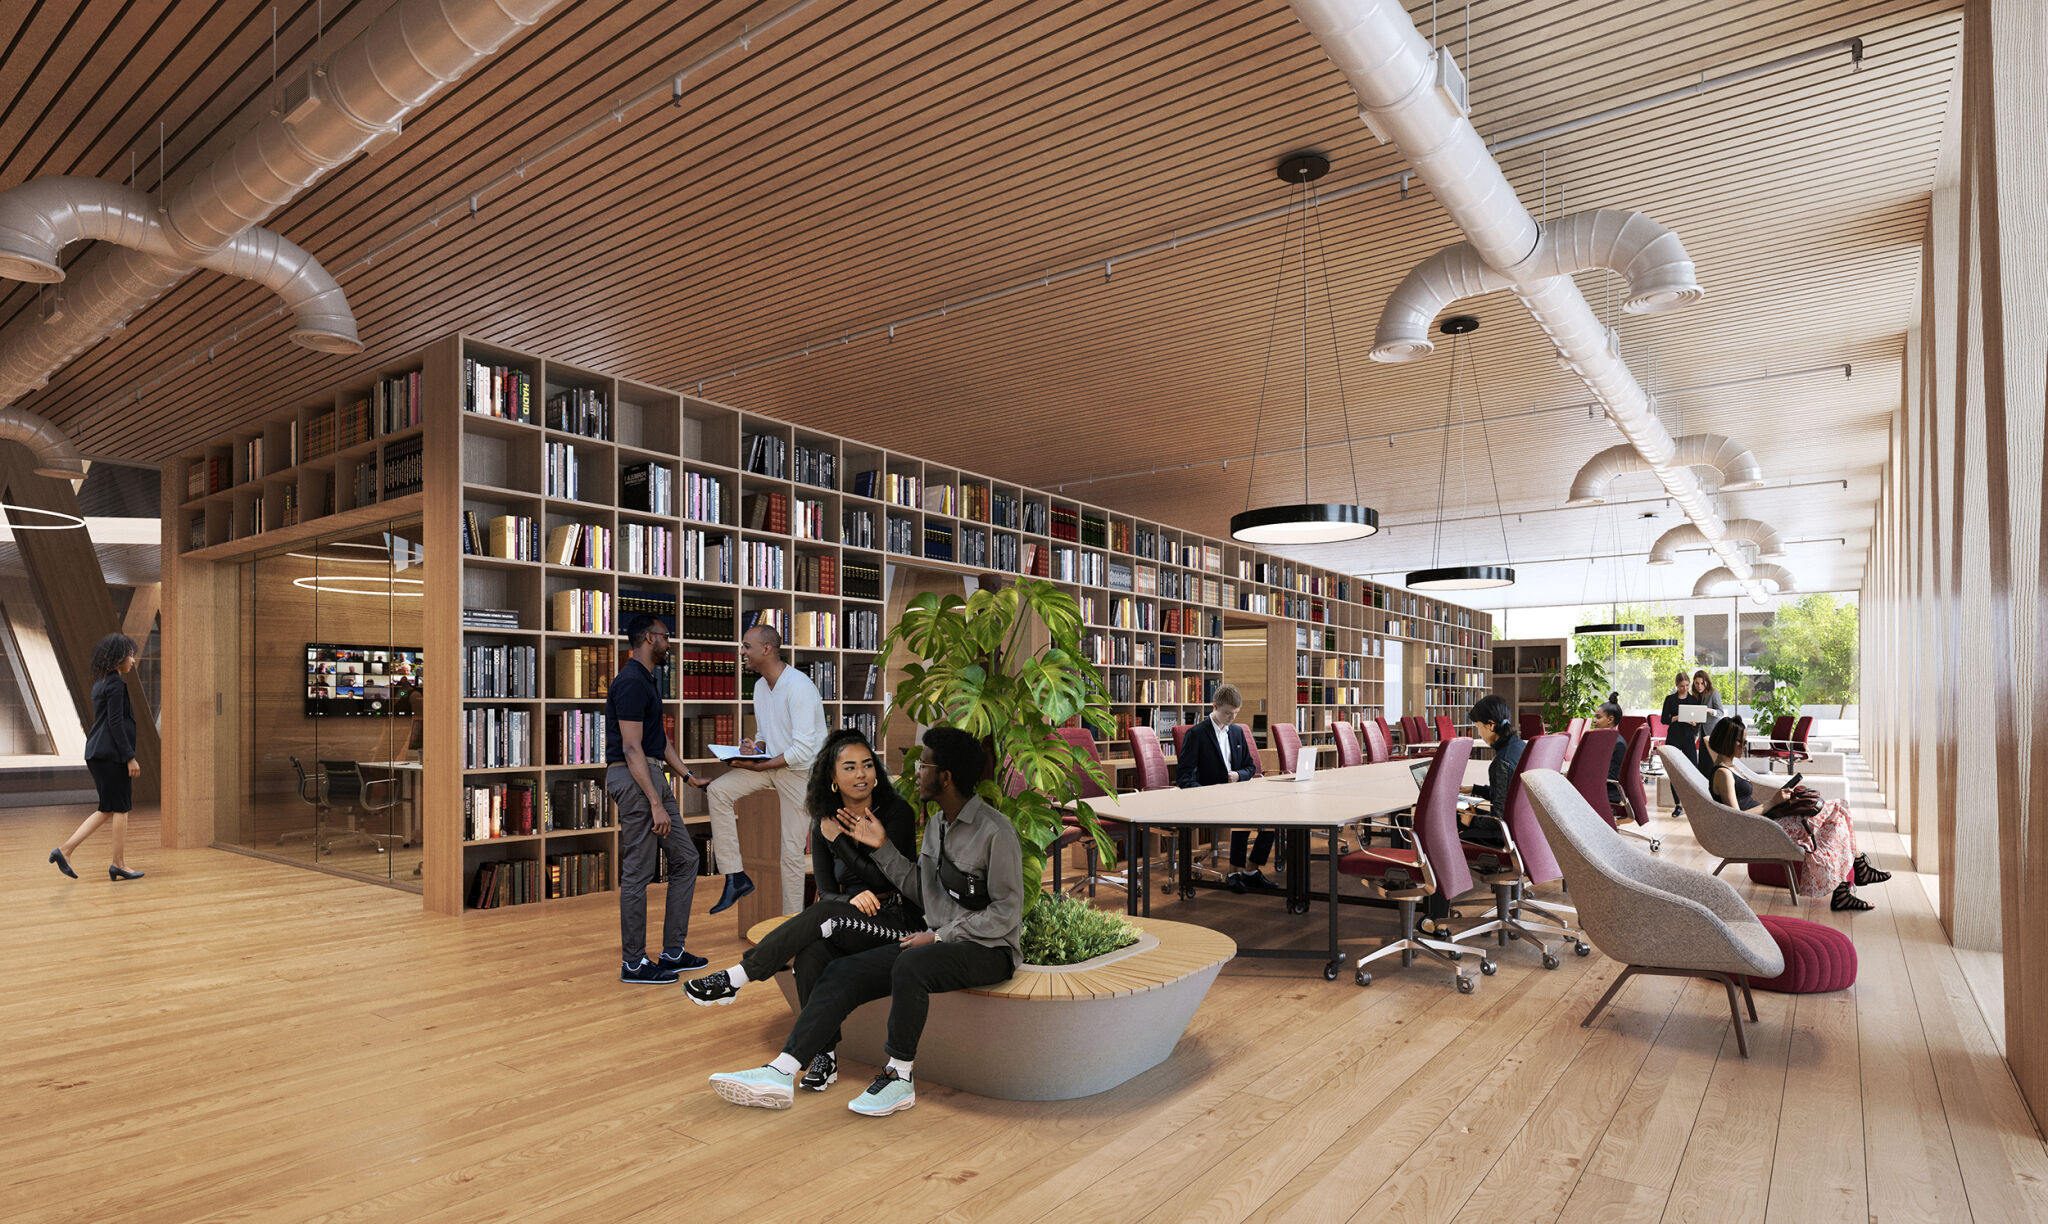 Artist rendering of the Innovation Hub inside the coming Integrated Sciences building shows students and faculty sitting around a large, wood paneled space near floor to ceiling windows and smaller room in the back encased by a custom, wooden floor-to-ceiling bookshelf and glass door.